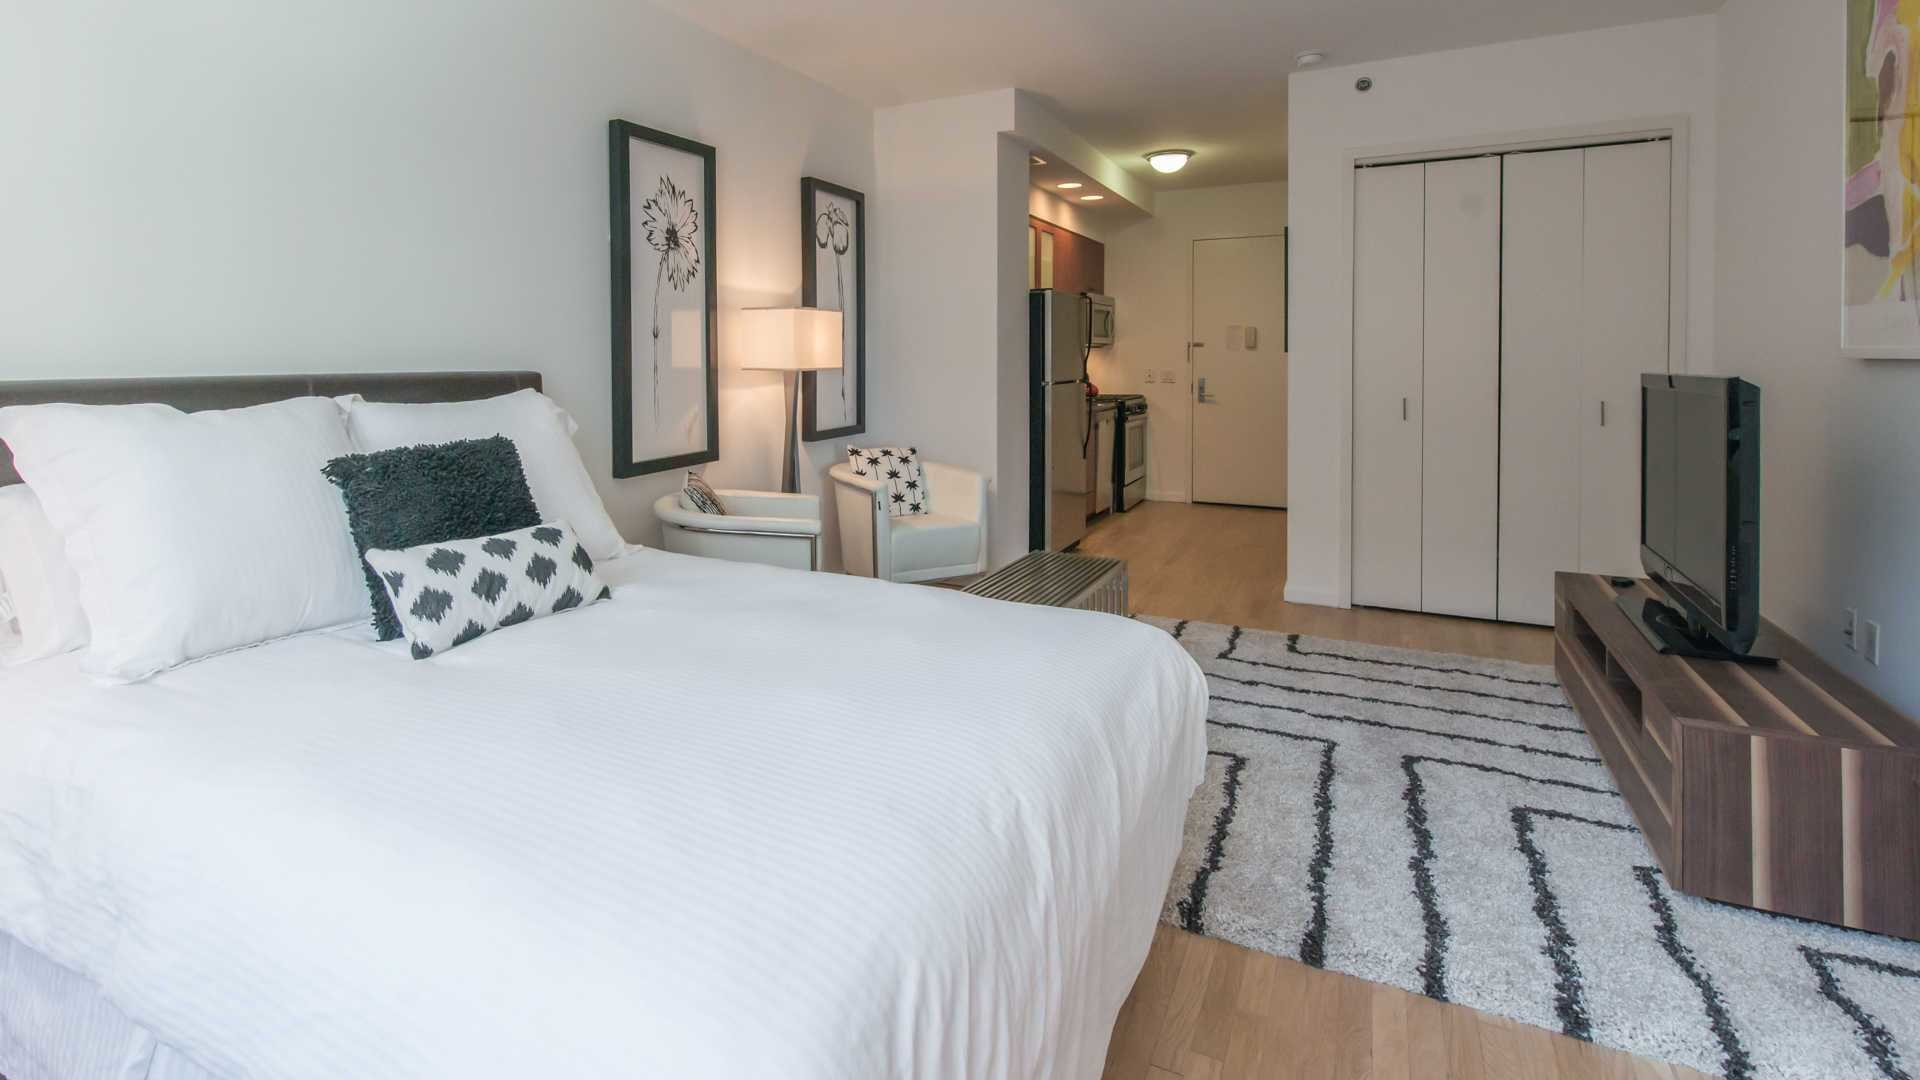 Best 2 Bedroom Apartments In Houston For 600 Www Resnooze Com With Pictures